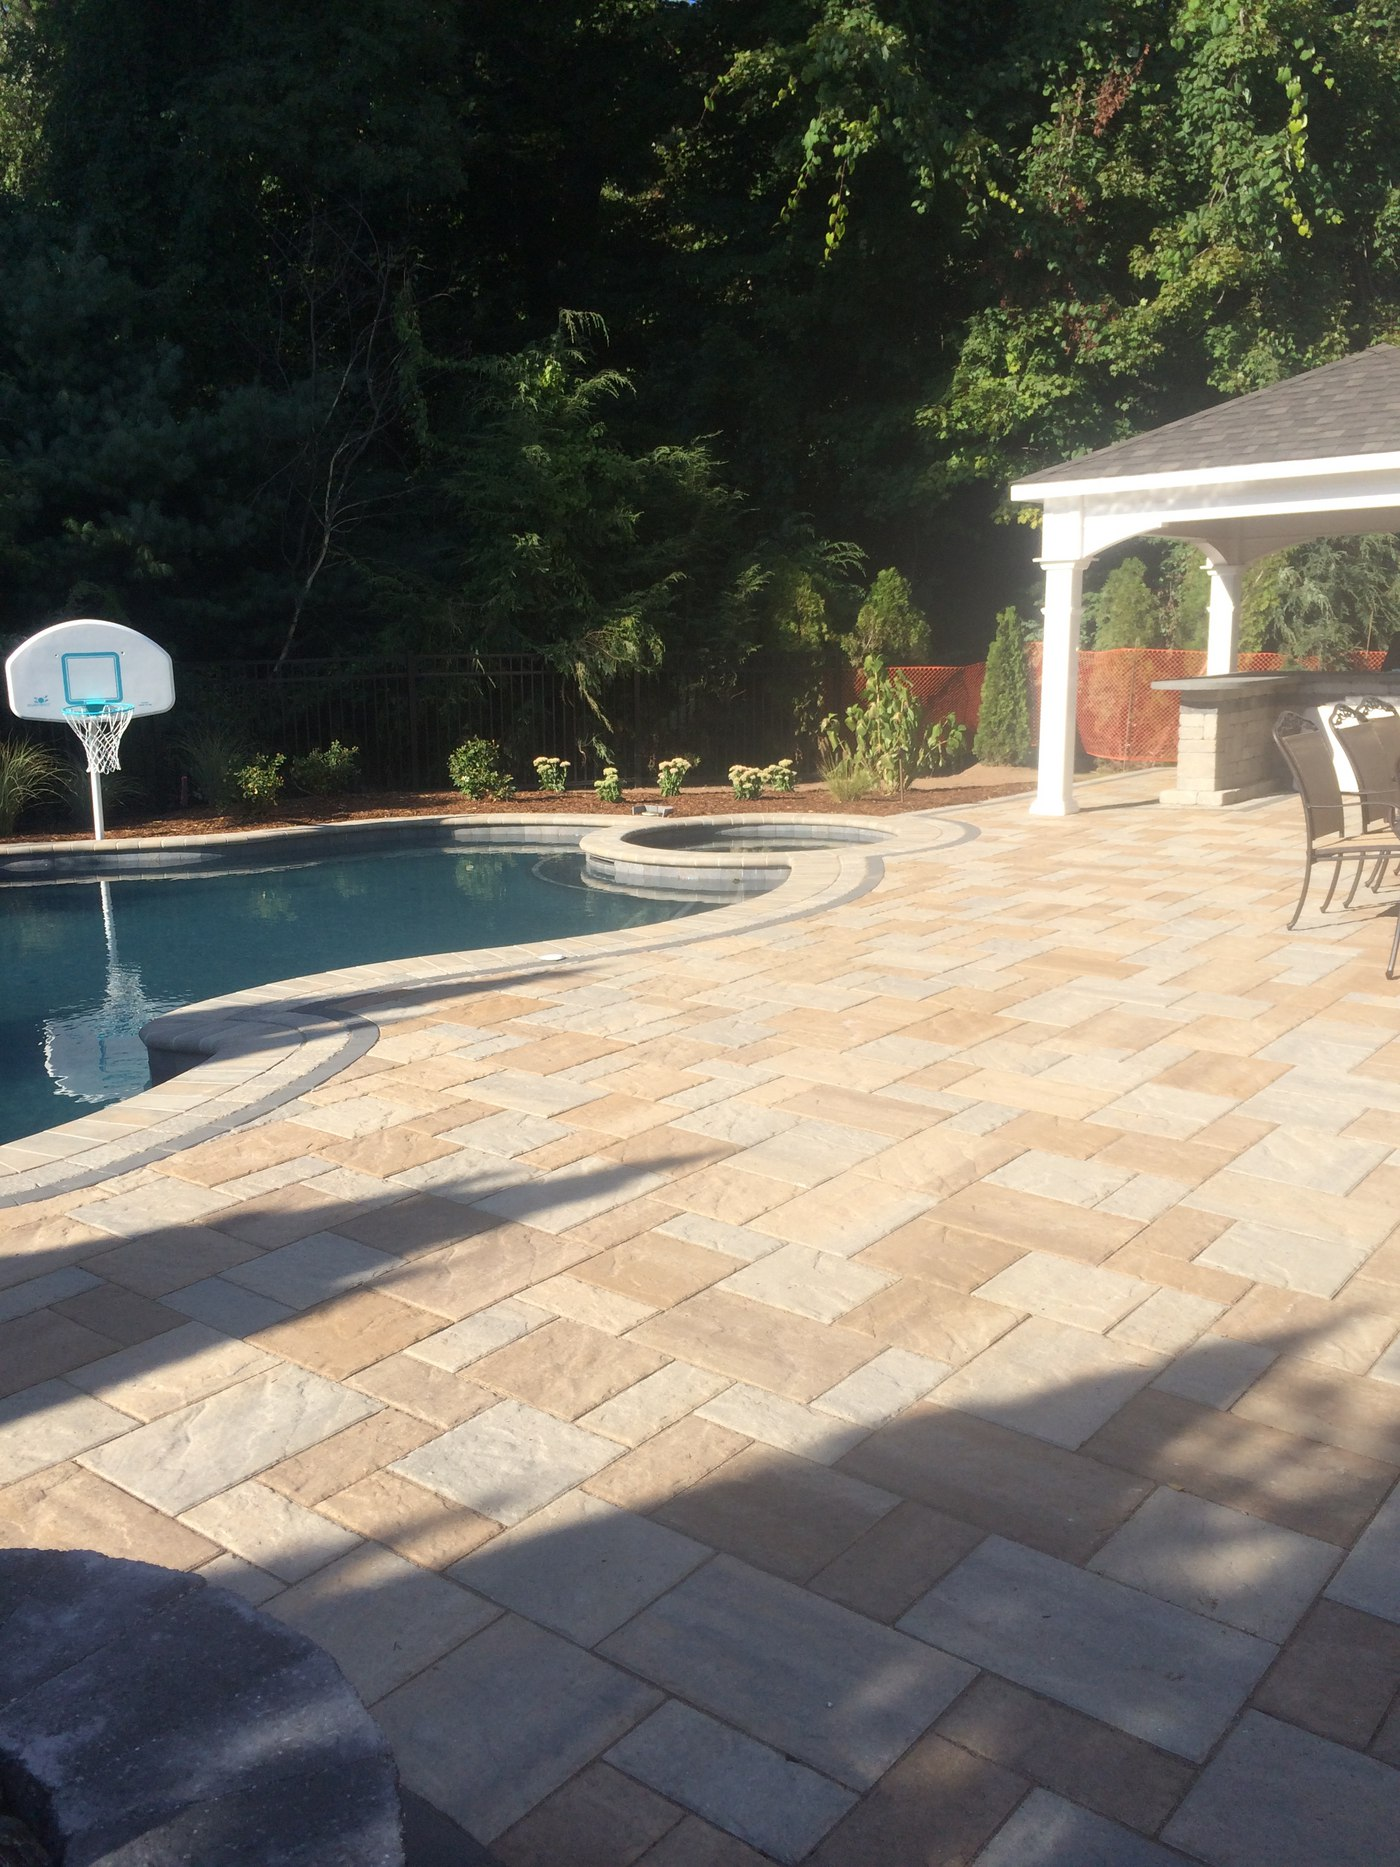 Pool patio with pavilion, outdoor kitchen and landscaping by Bahler Brothers in Farmington, CT